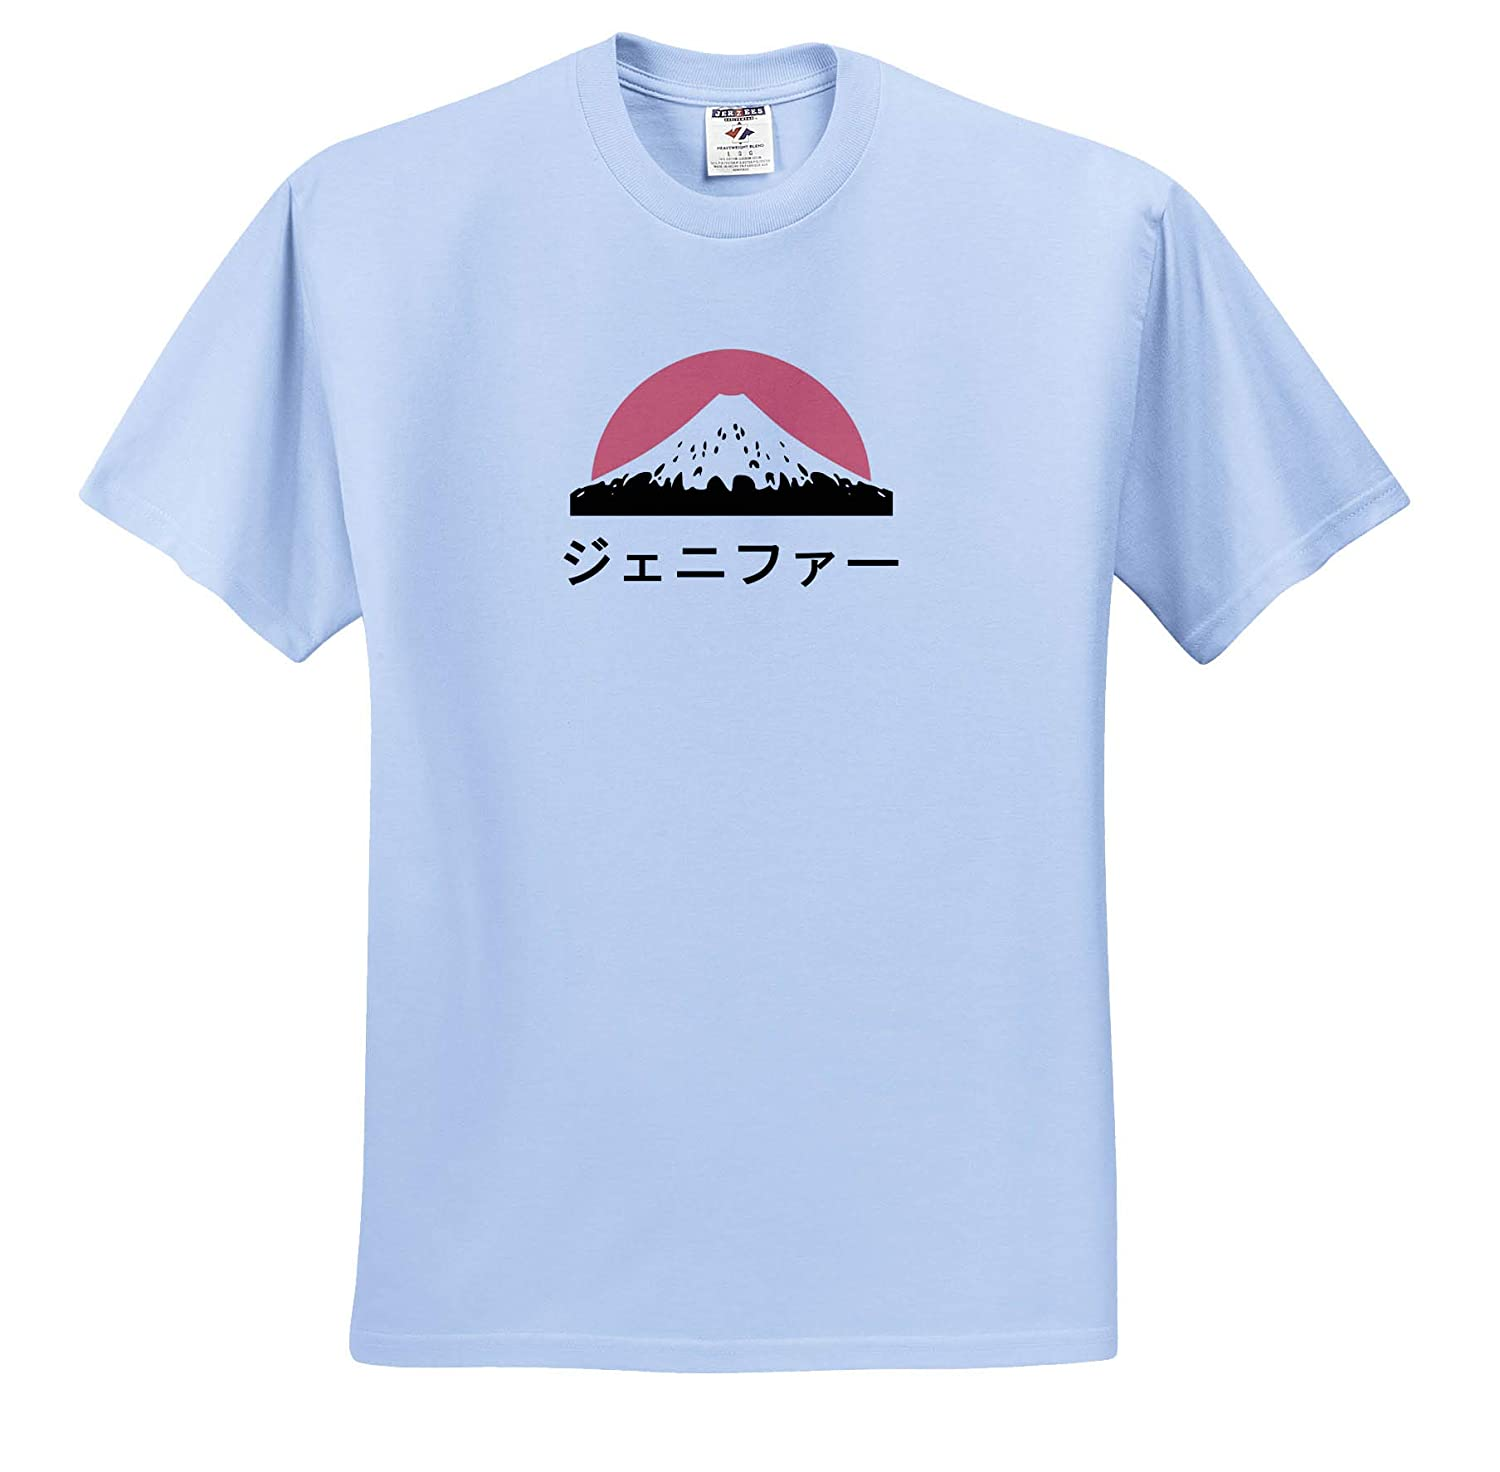 Jennifer in Japanese Letters 3dRose InspirationzStore ts/_320507 Adult T-Shirt XL Name in Japanese